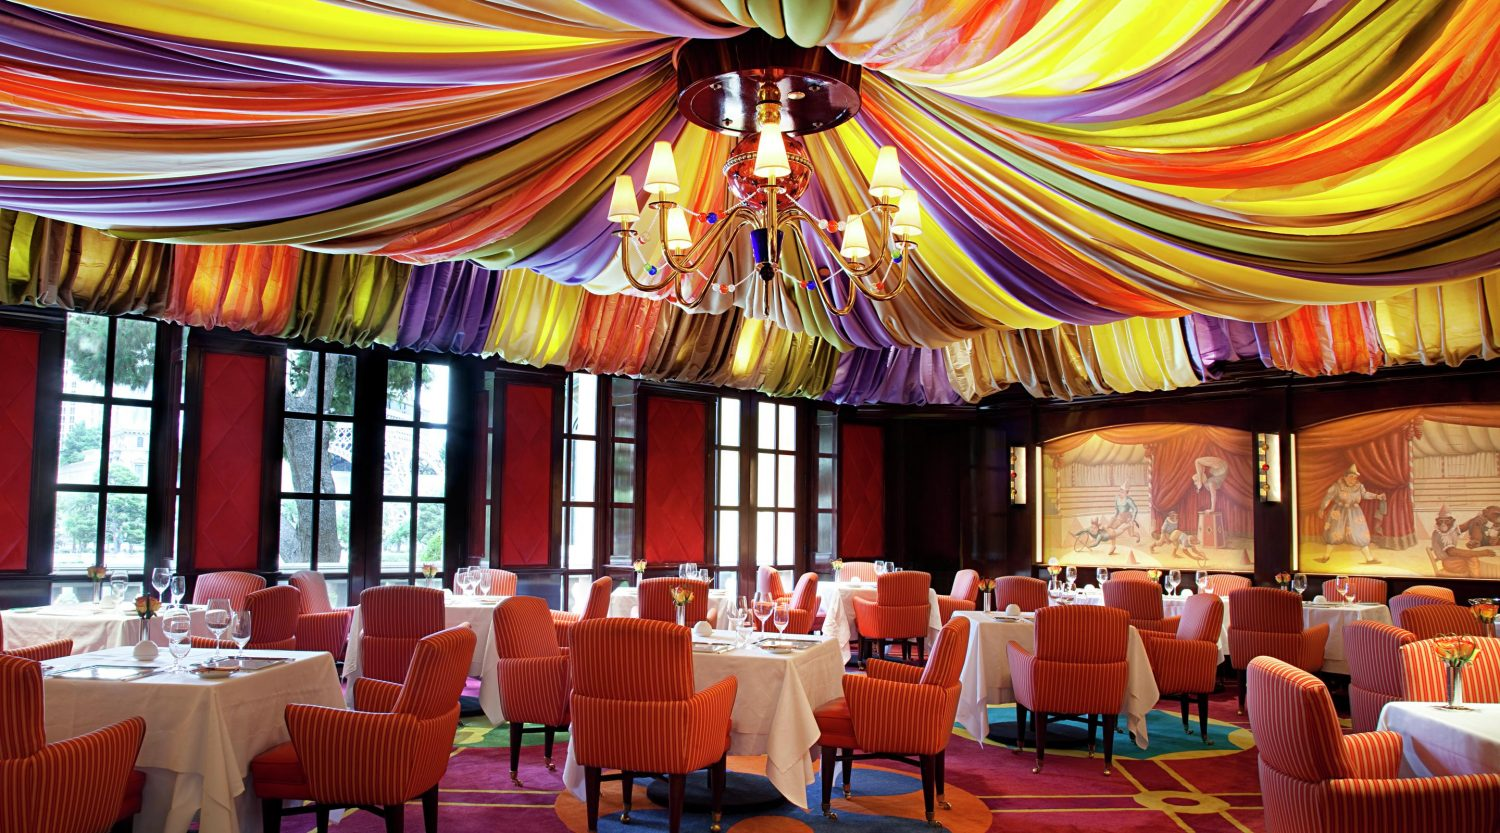 Las Vegas Design Guide las vegas design guide LAS VEGAS DESIGN GUIDE bellagio le cirque dining room